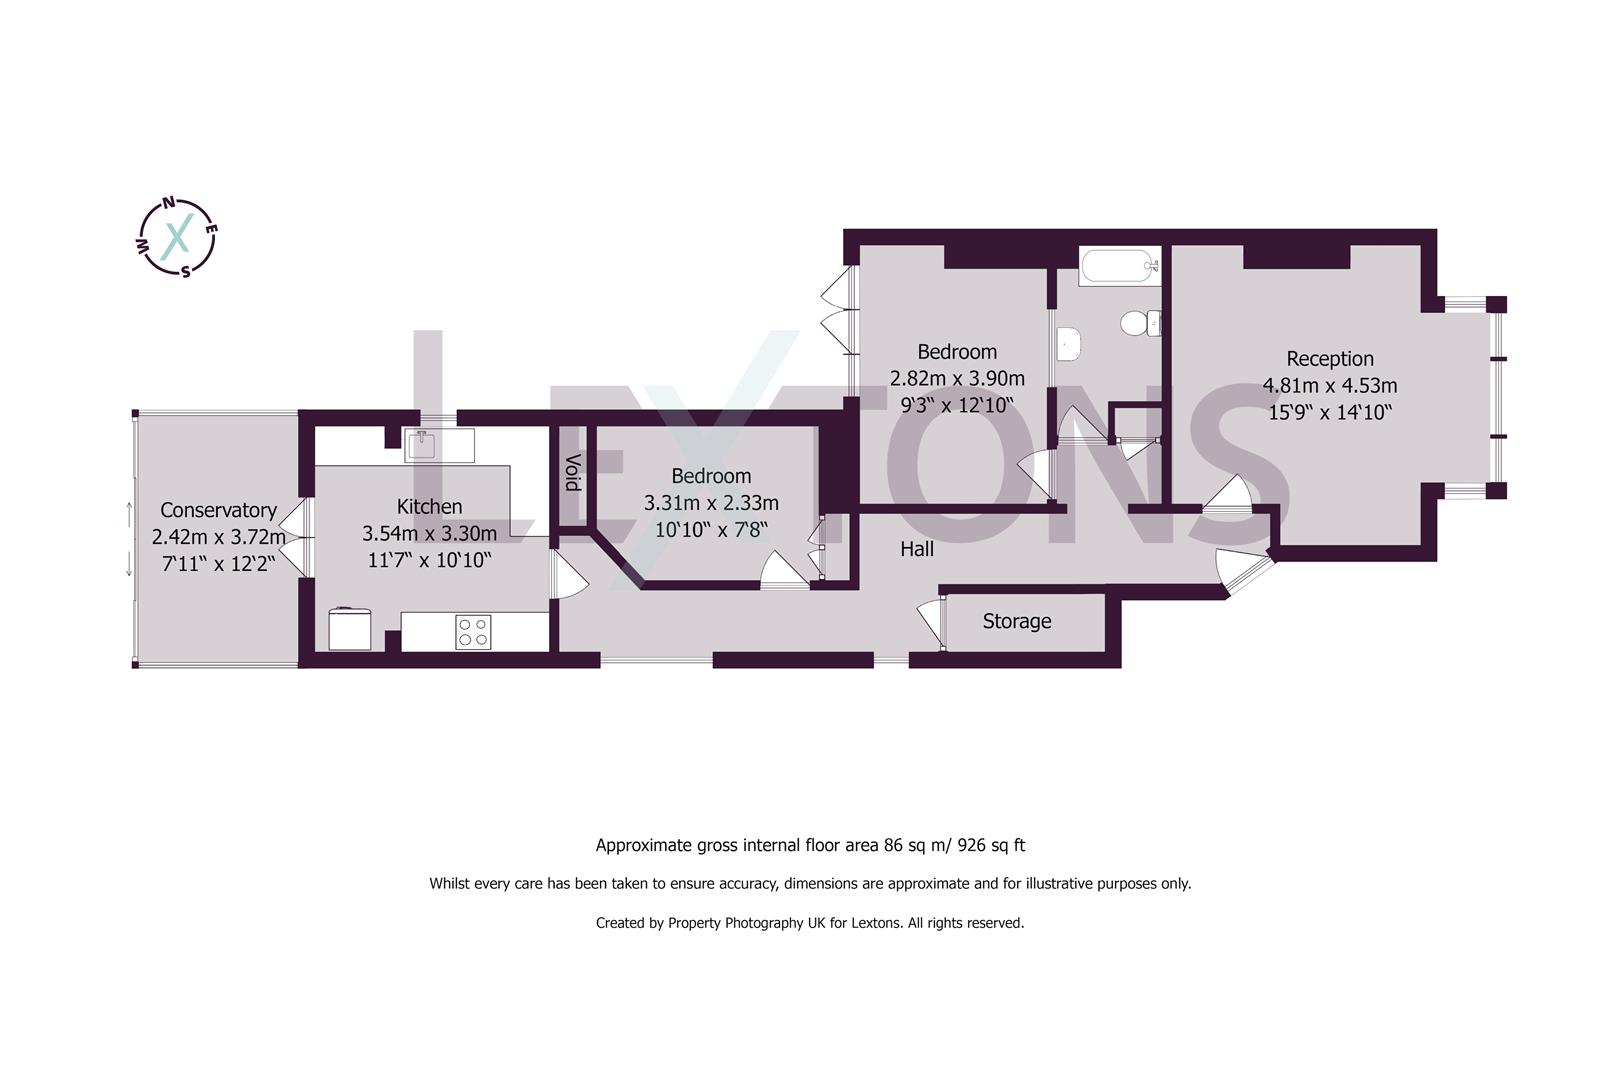 Floorplans For Rutland Gardens, Hove